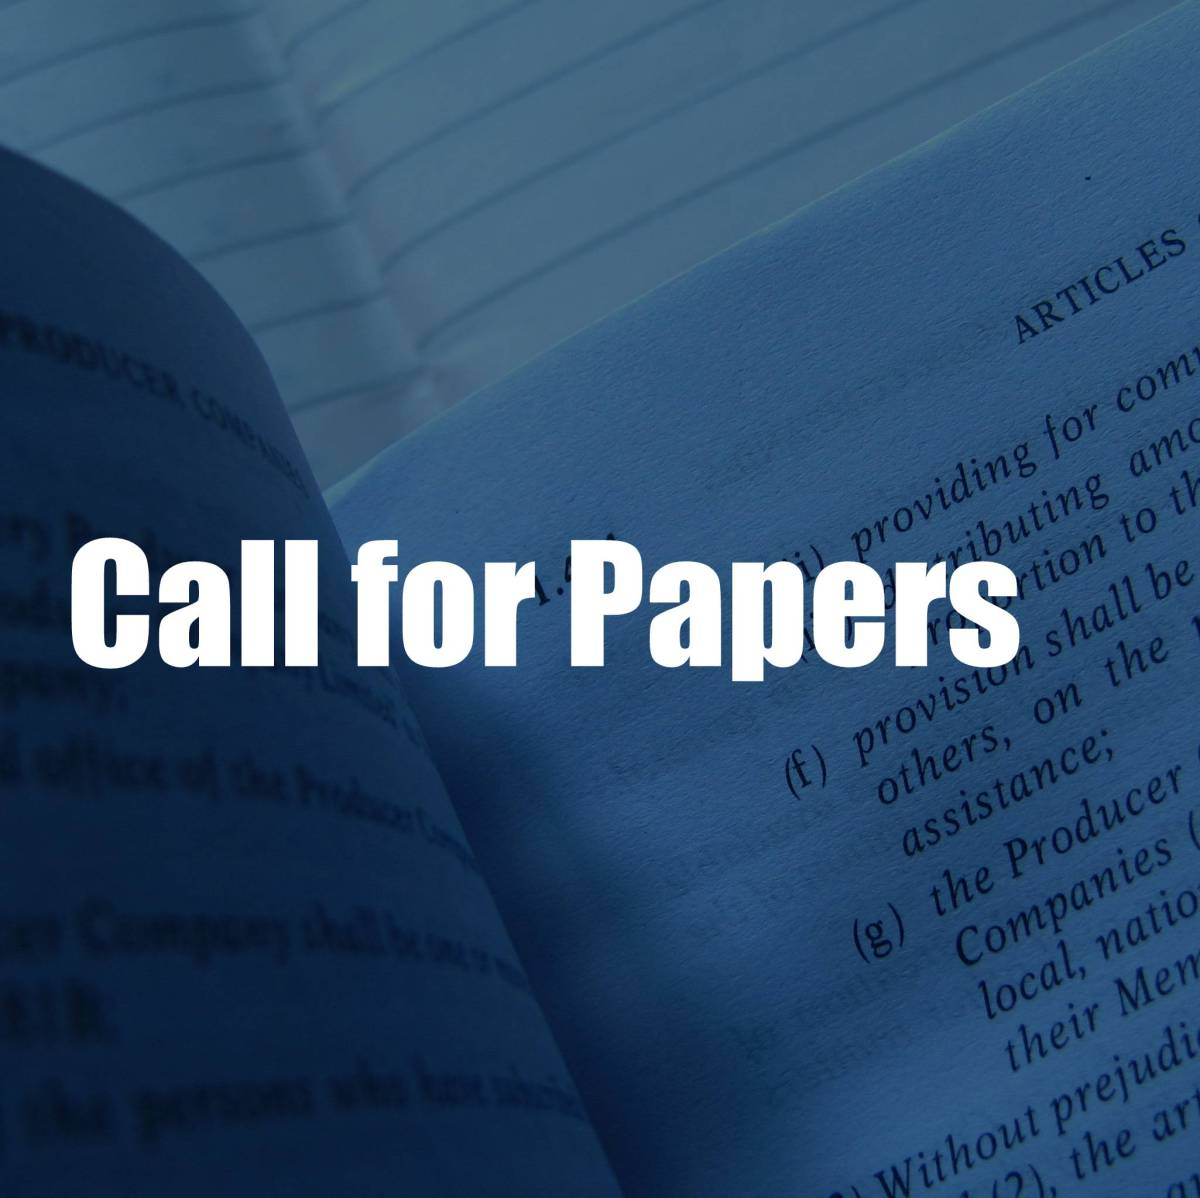 Research papers for law students in india